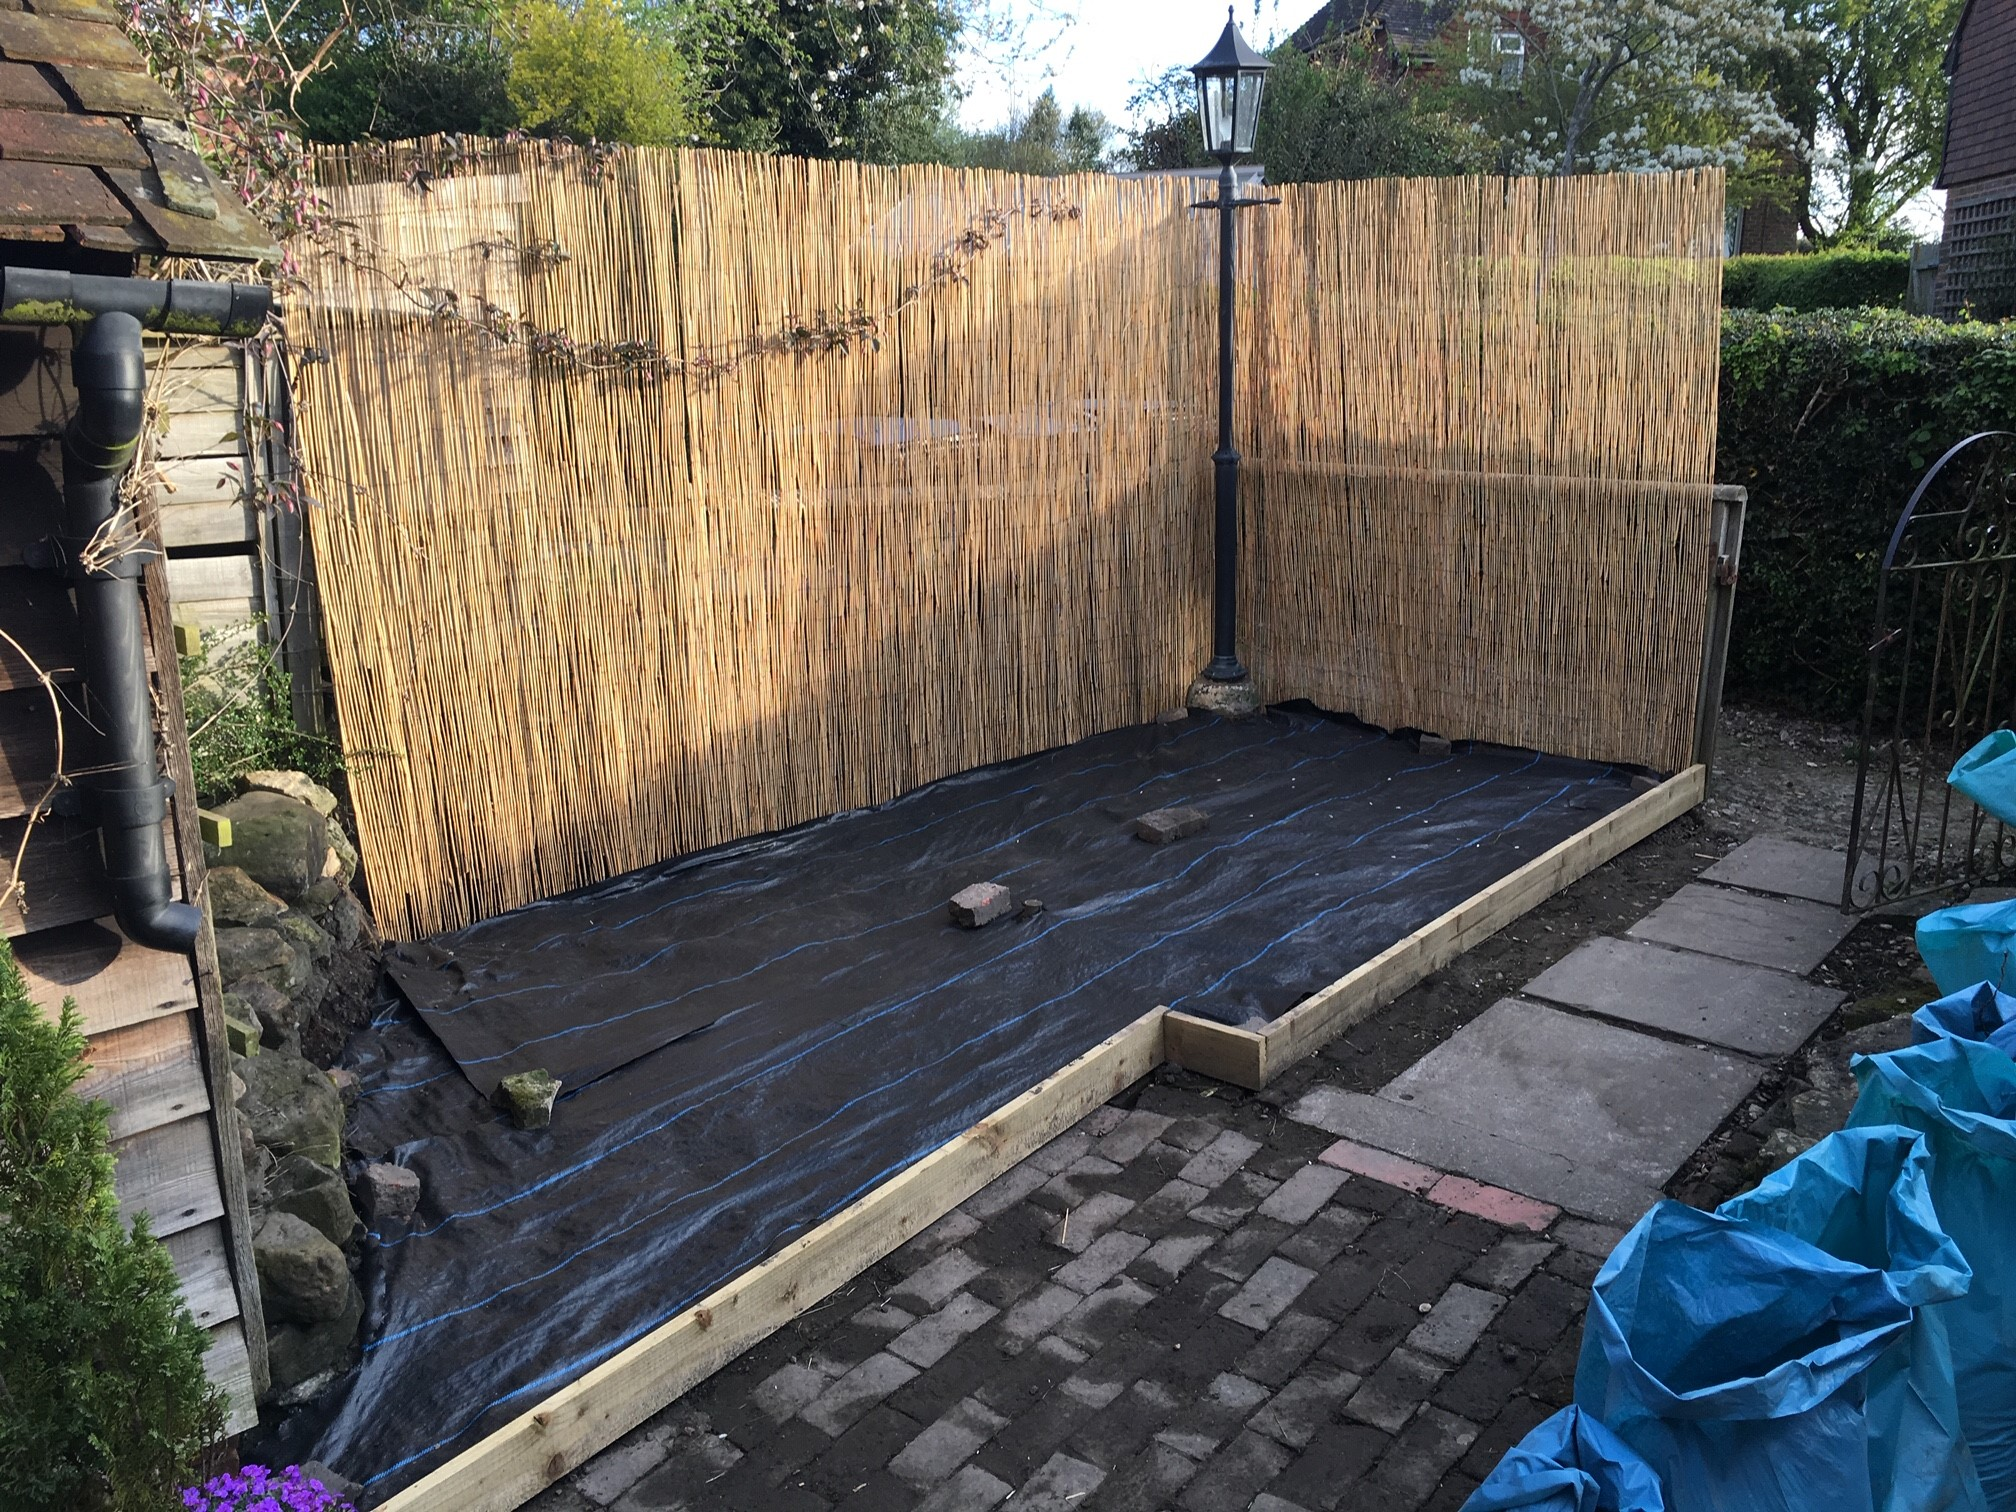 Levelled and screened off